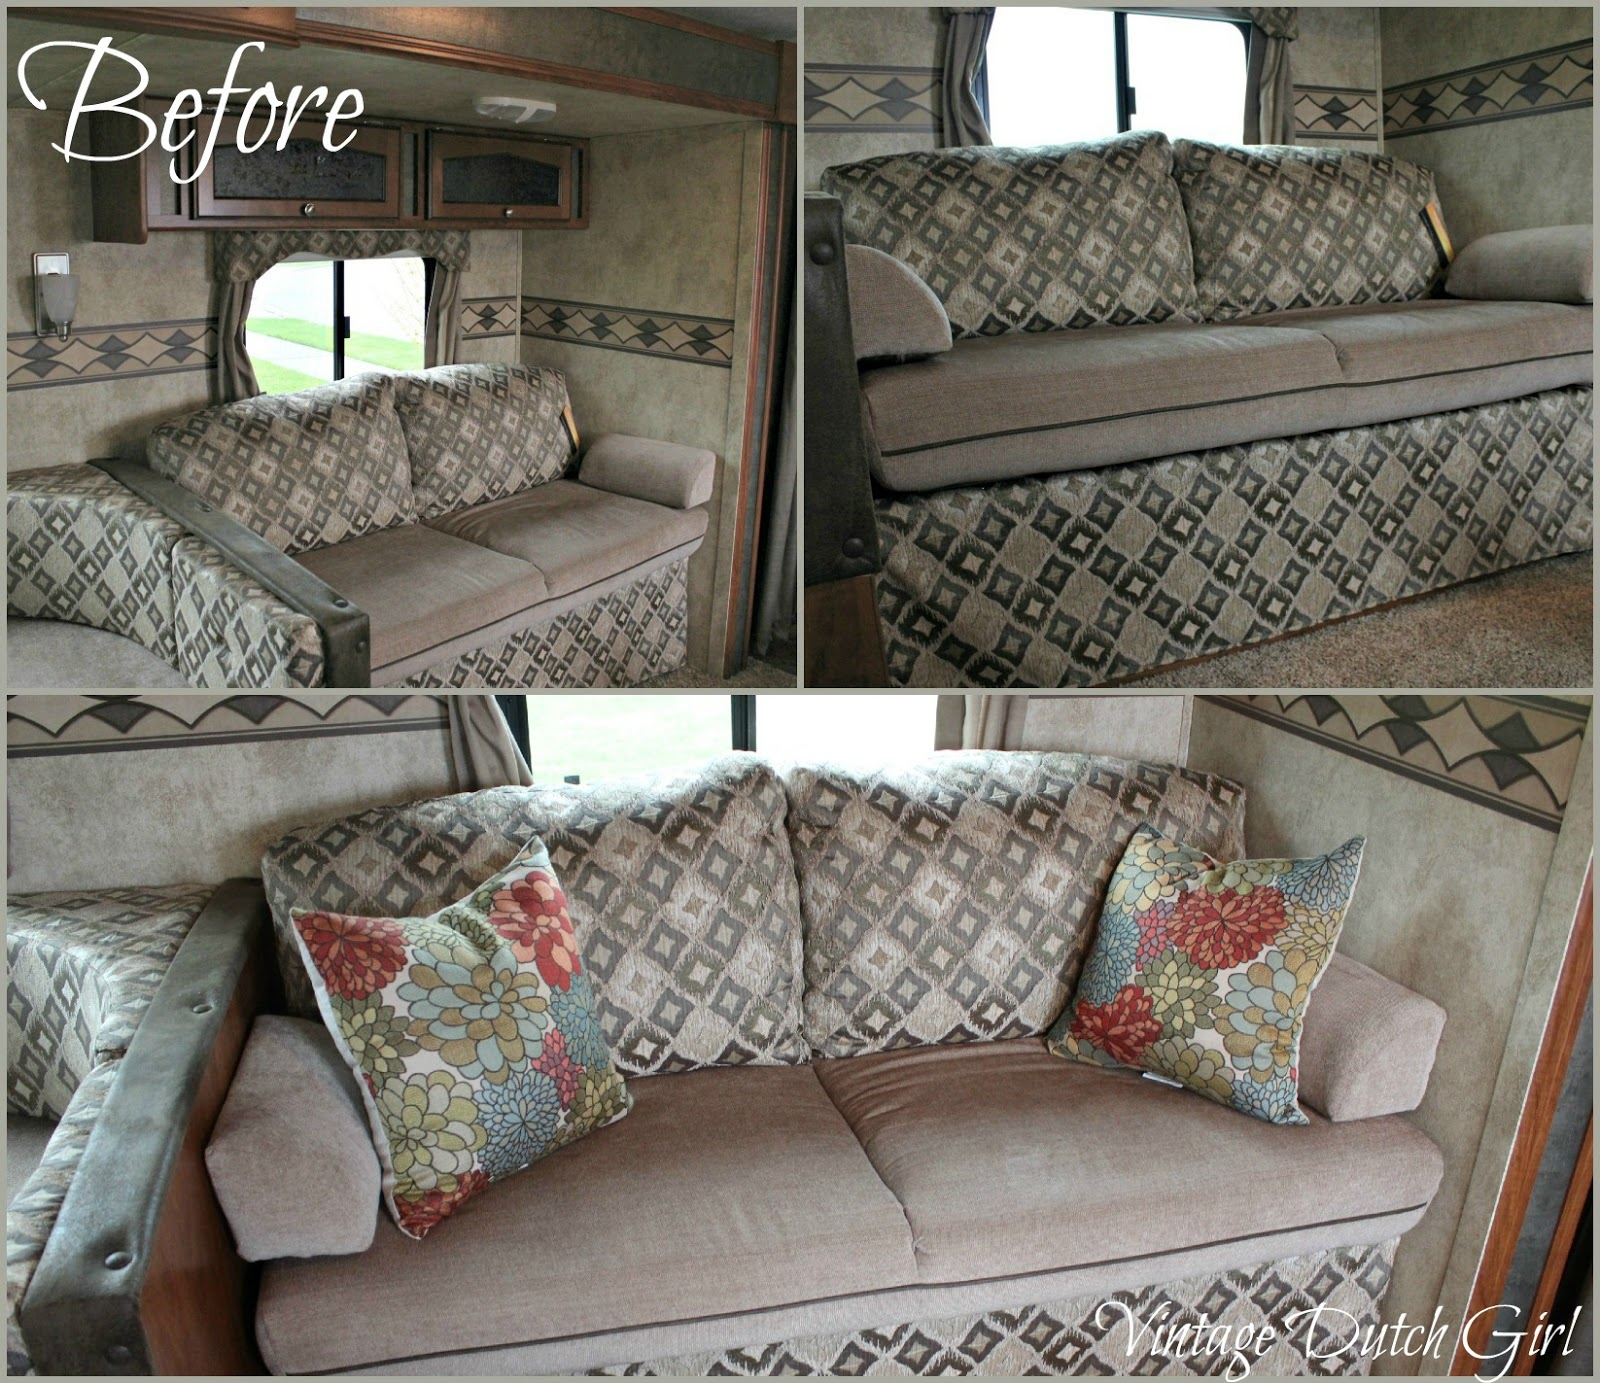 Vintage Dutch Girl Travel Trailer Makeover Part 7 Chevron